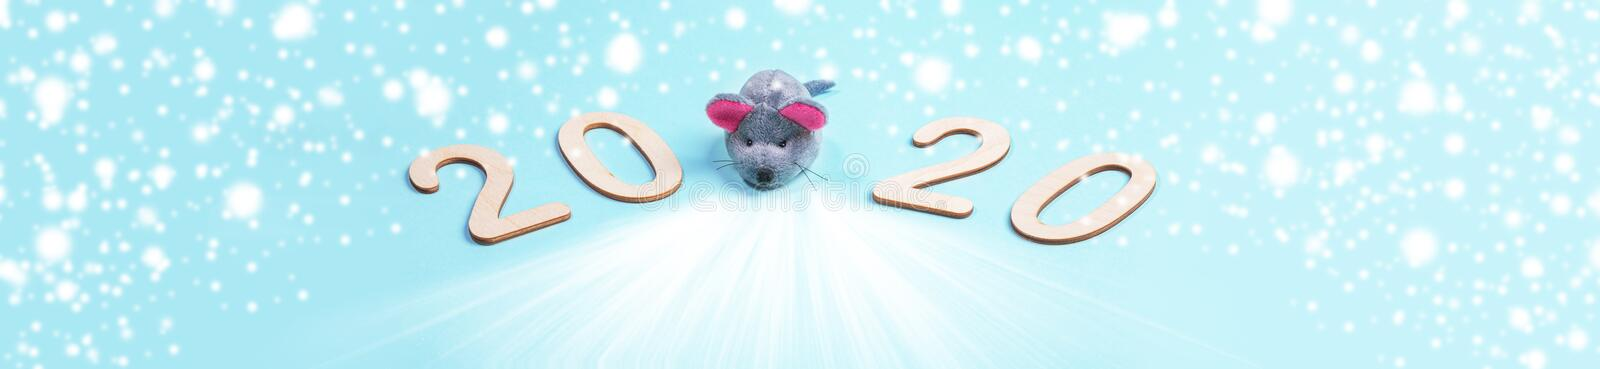 Creative banner of 2020 Merry Christmas or Happy new year. Wooden numbers with grey toy rat on snowy blue backdrop stock photo